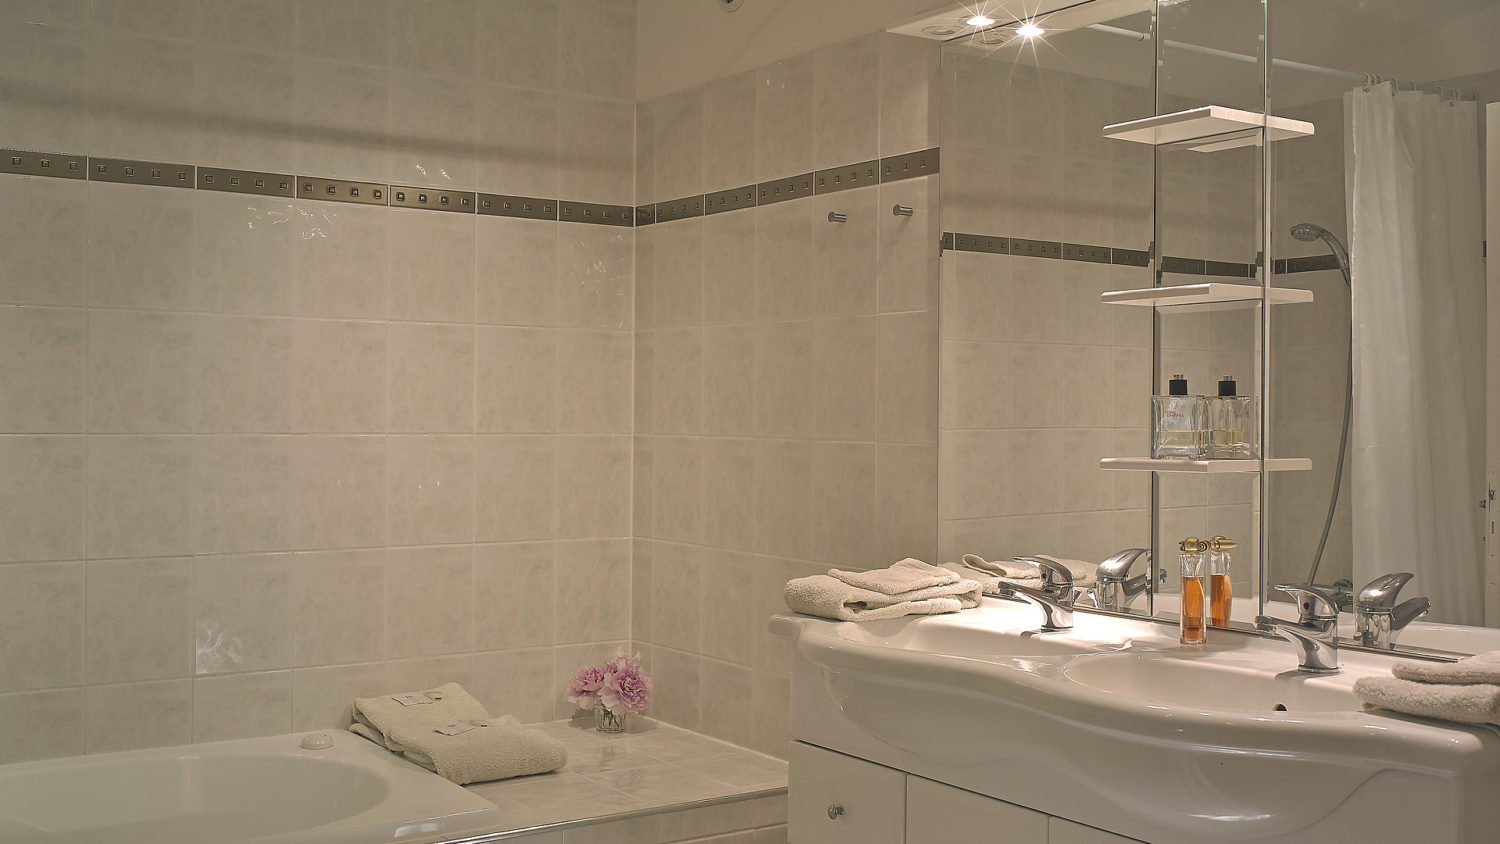 Pomerol (4 pers) spacious bathroom with a jacuzzi bath, two washbasins and a WC